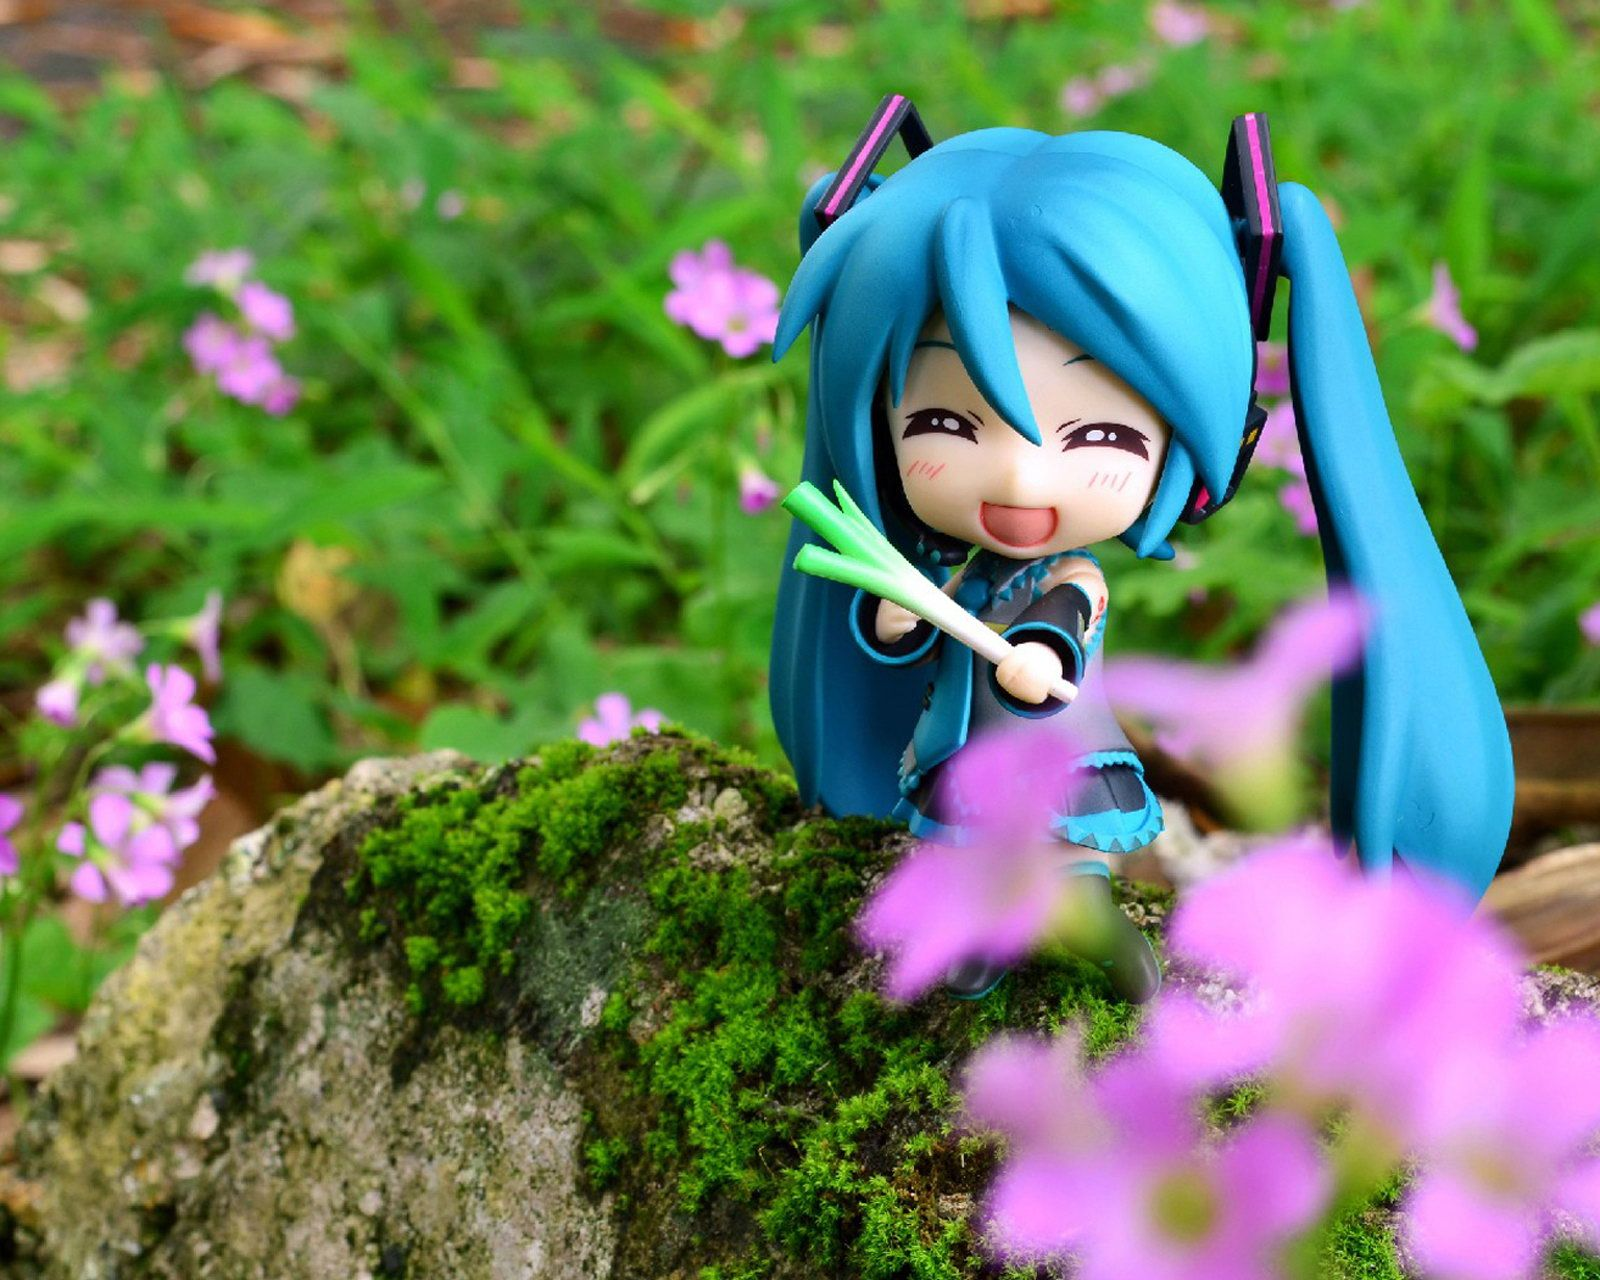 Pair Of Cute Toys Hd Wallpaper: Cute Hatsune Miku Figure Android Phone Wallpapers